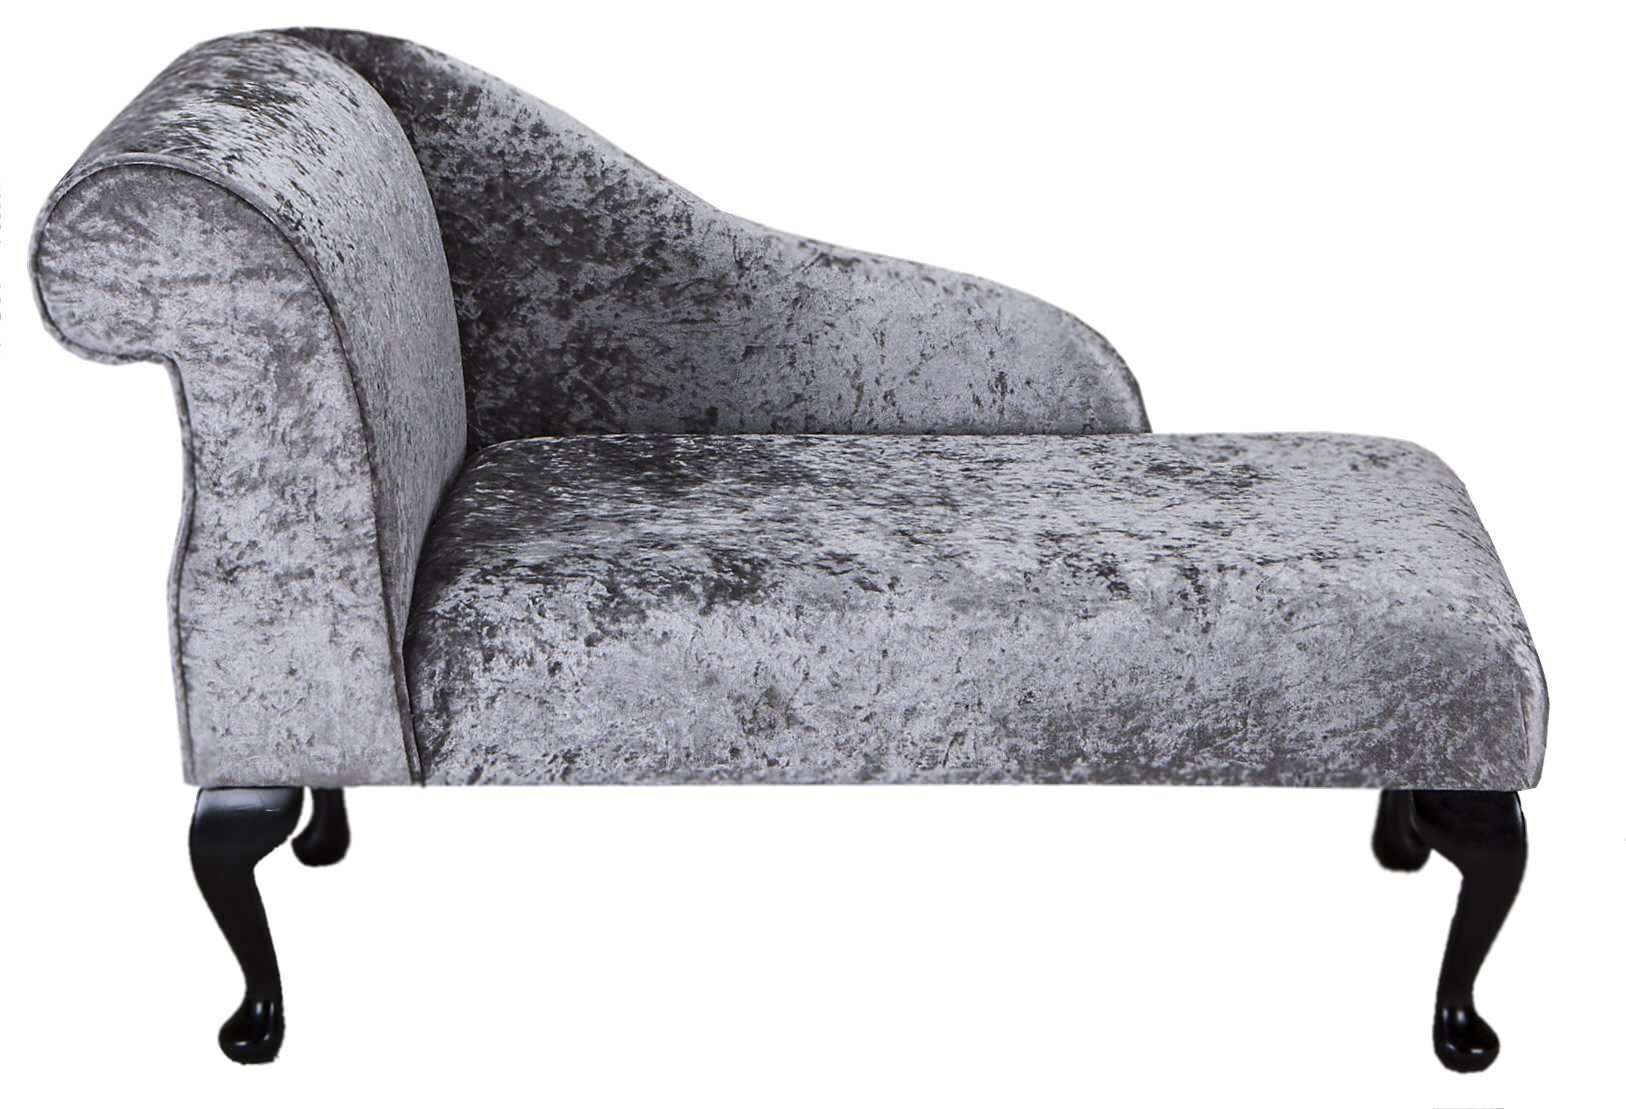 41″ Small Classic Chaise Longue – Chair Seat – Bling Pewter Fabric – Left Facing With Queen Anne Legs